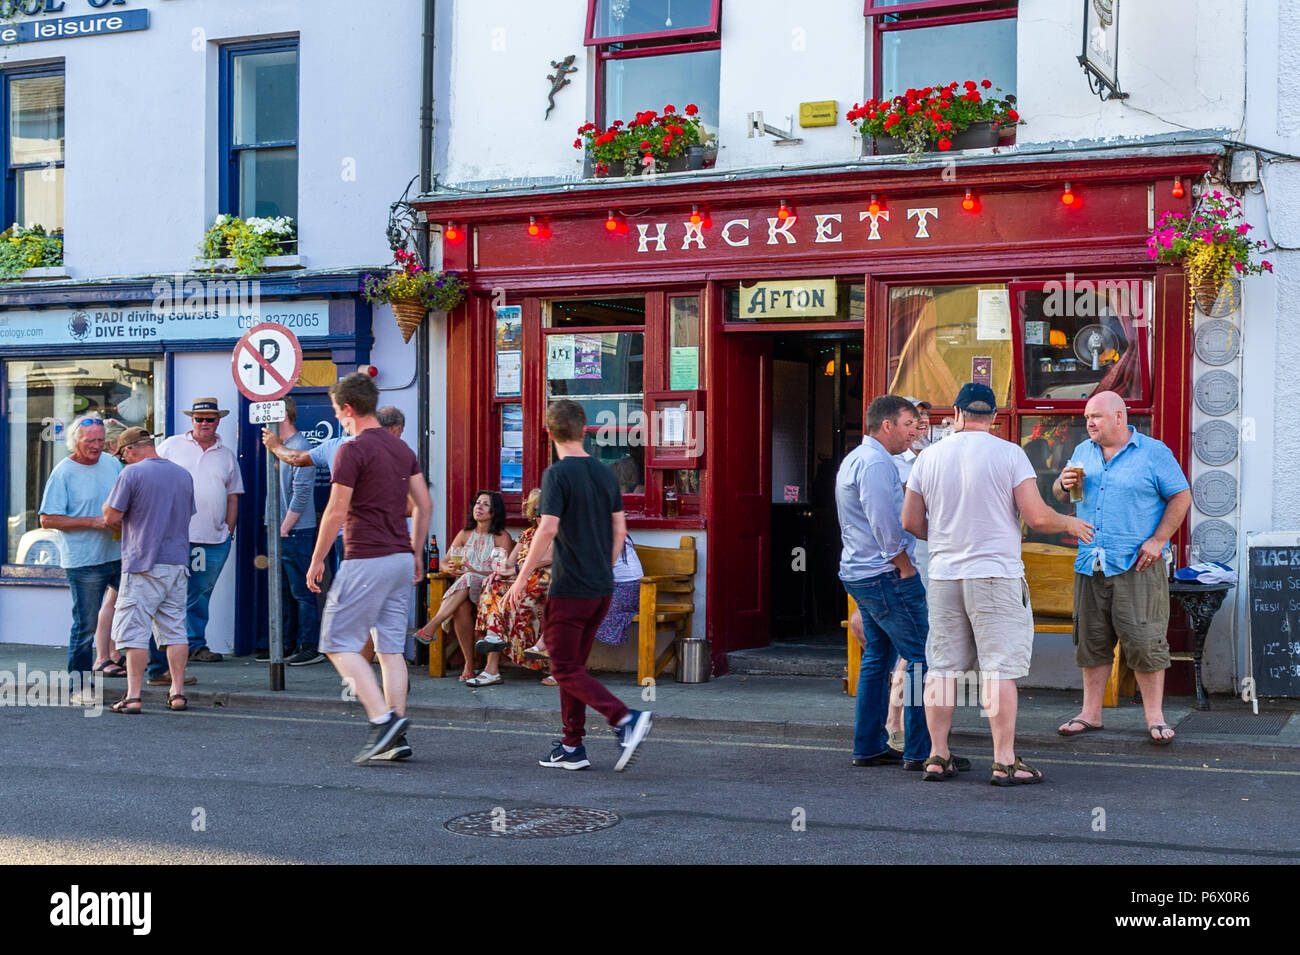 Schull, West Cork, Ireland . Hackett's Bar in Schull Main Street was very busy this evening with locals and tourists alike having a refreshing drink. The heatwave shows no sign of ending with temperatures forecast to be in the high 20°'s Celsius for at least a week. Credit: Andy Gibson/Alamy Live News. - Stock Image